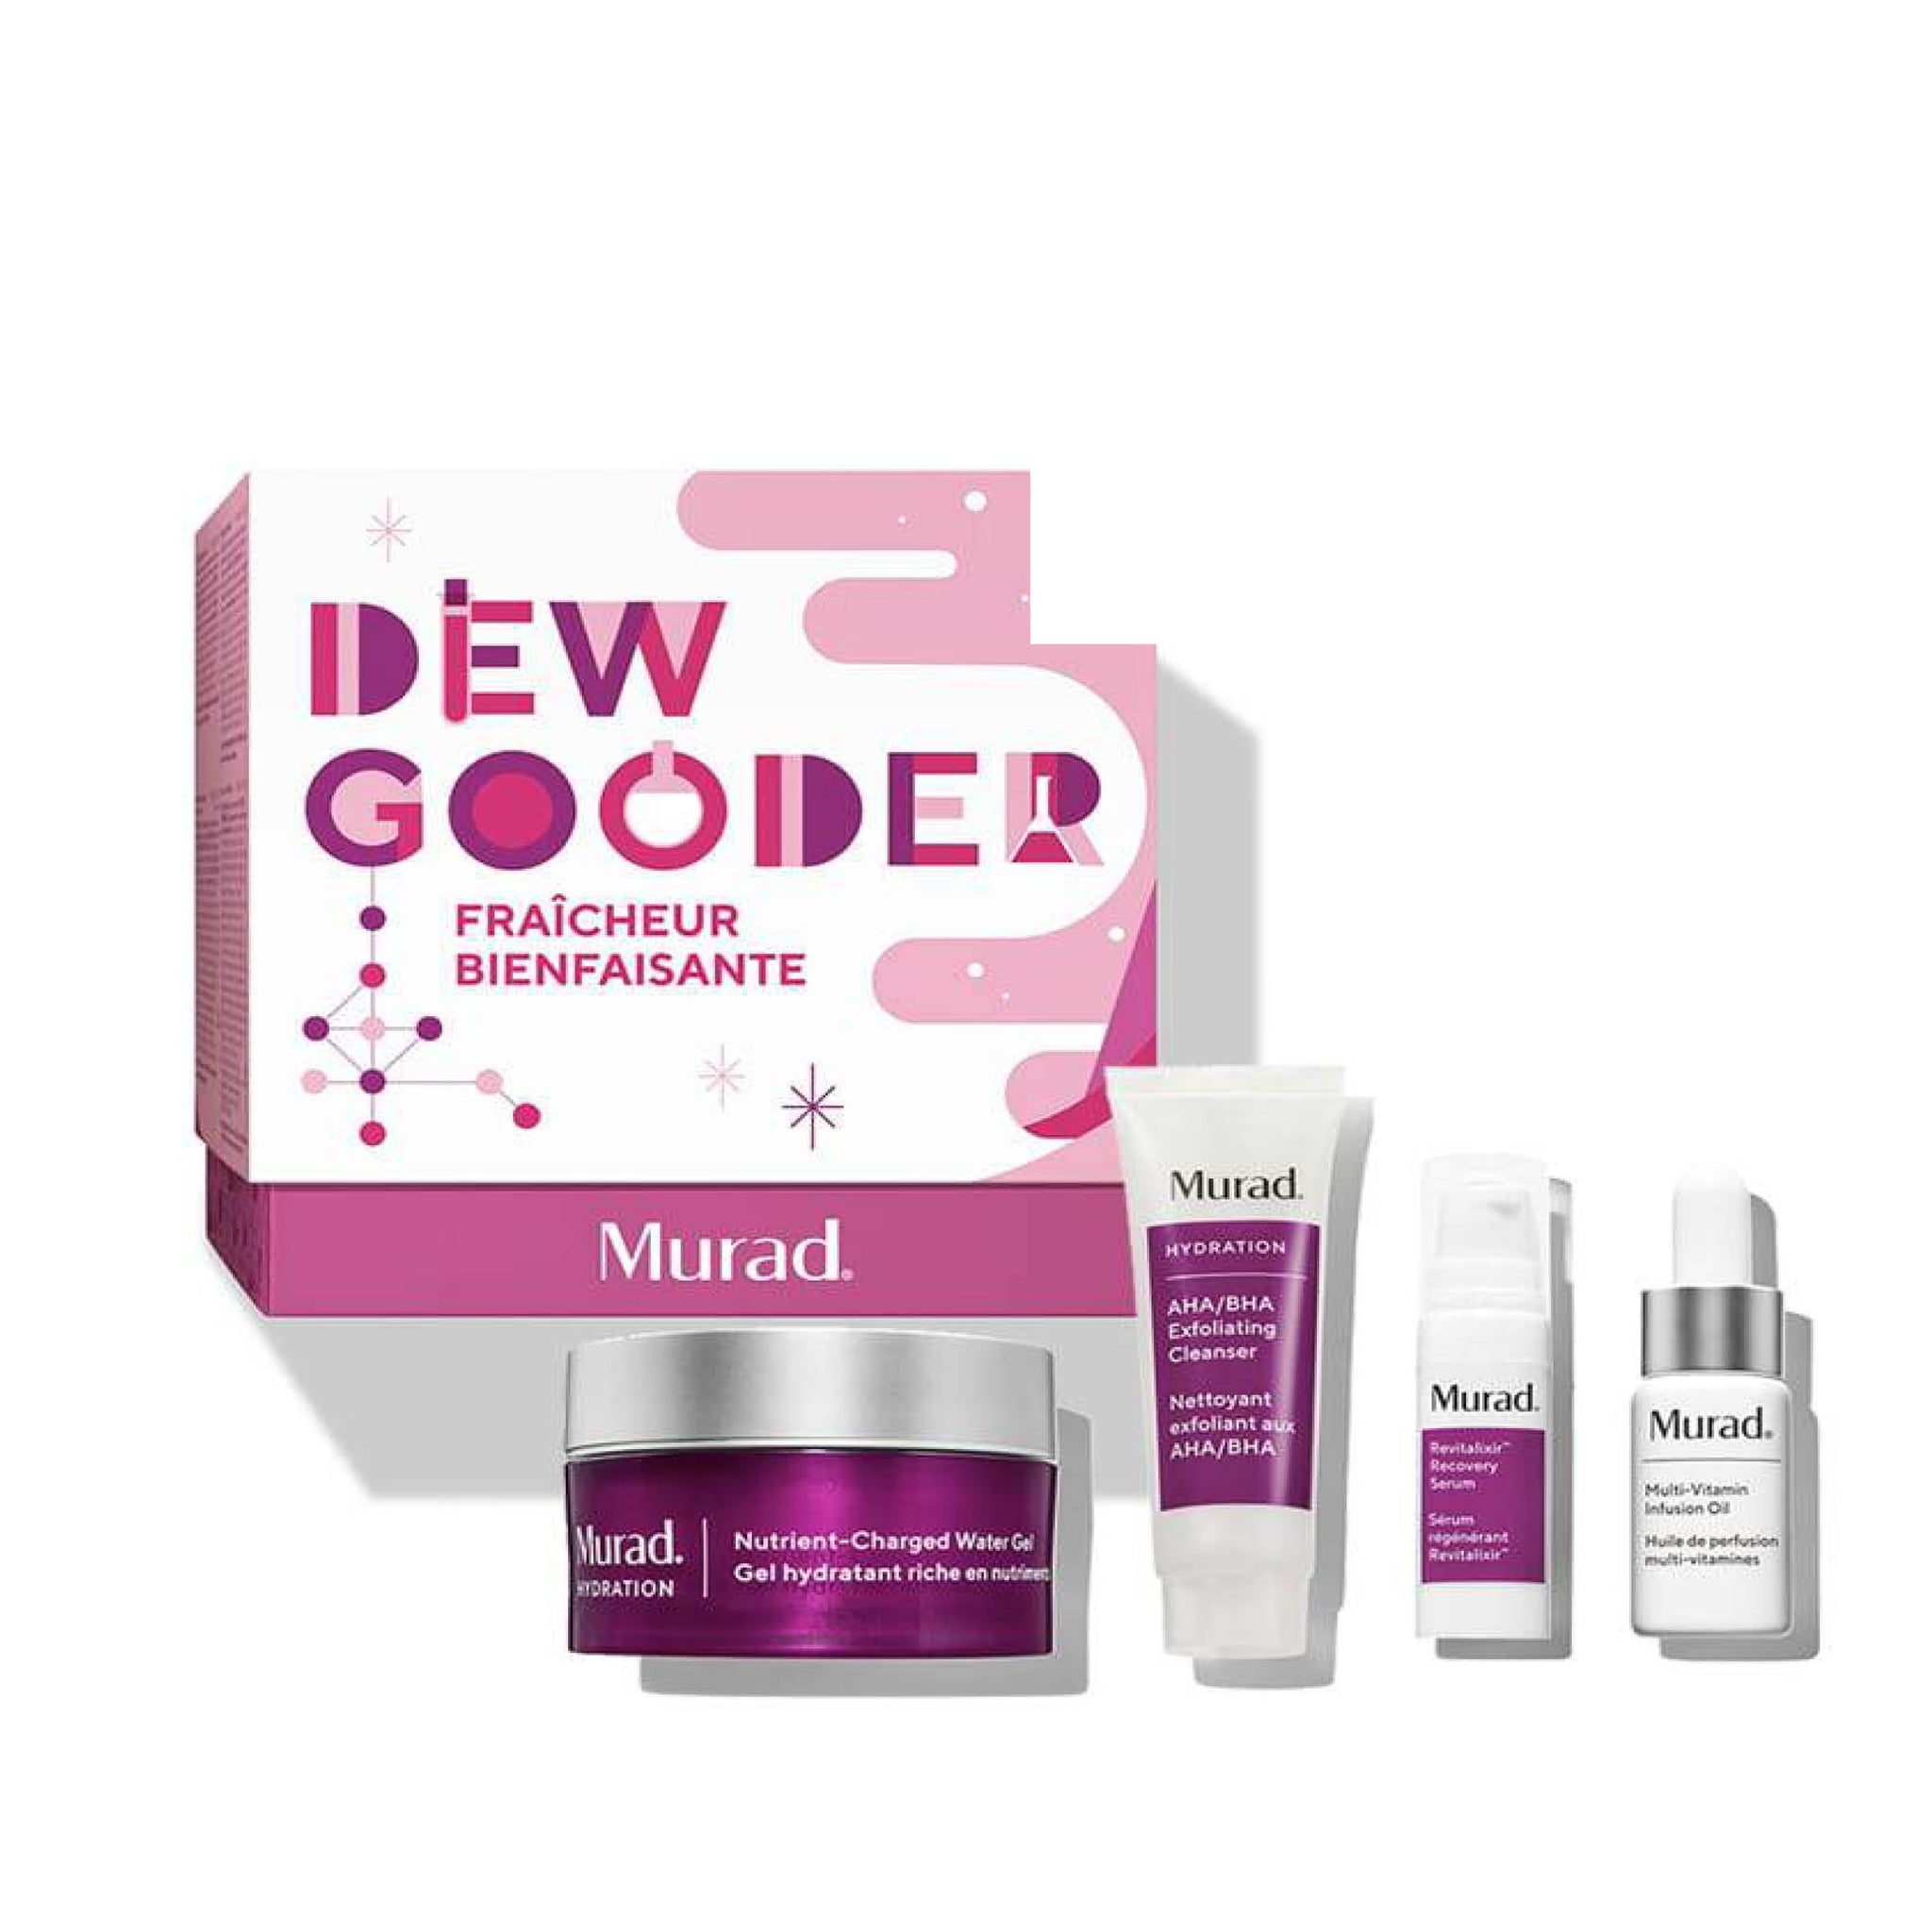 Murad Dew Gooder Gift Set